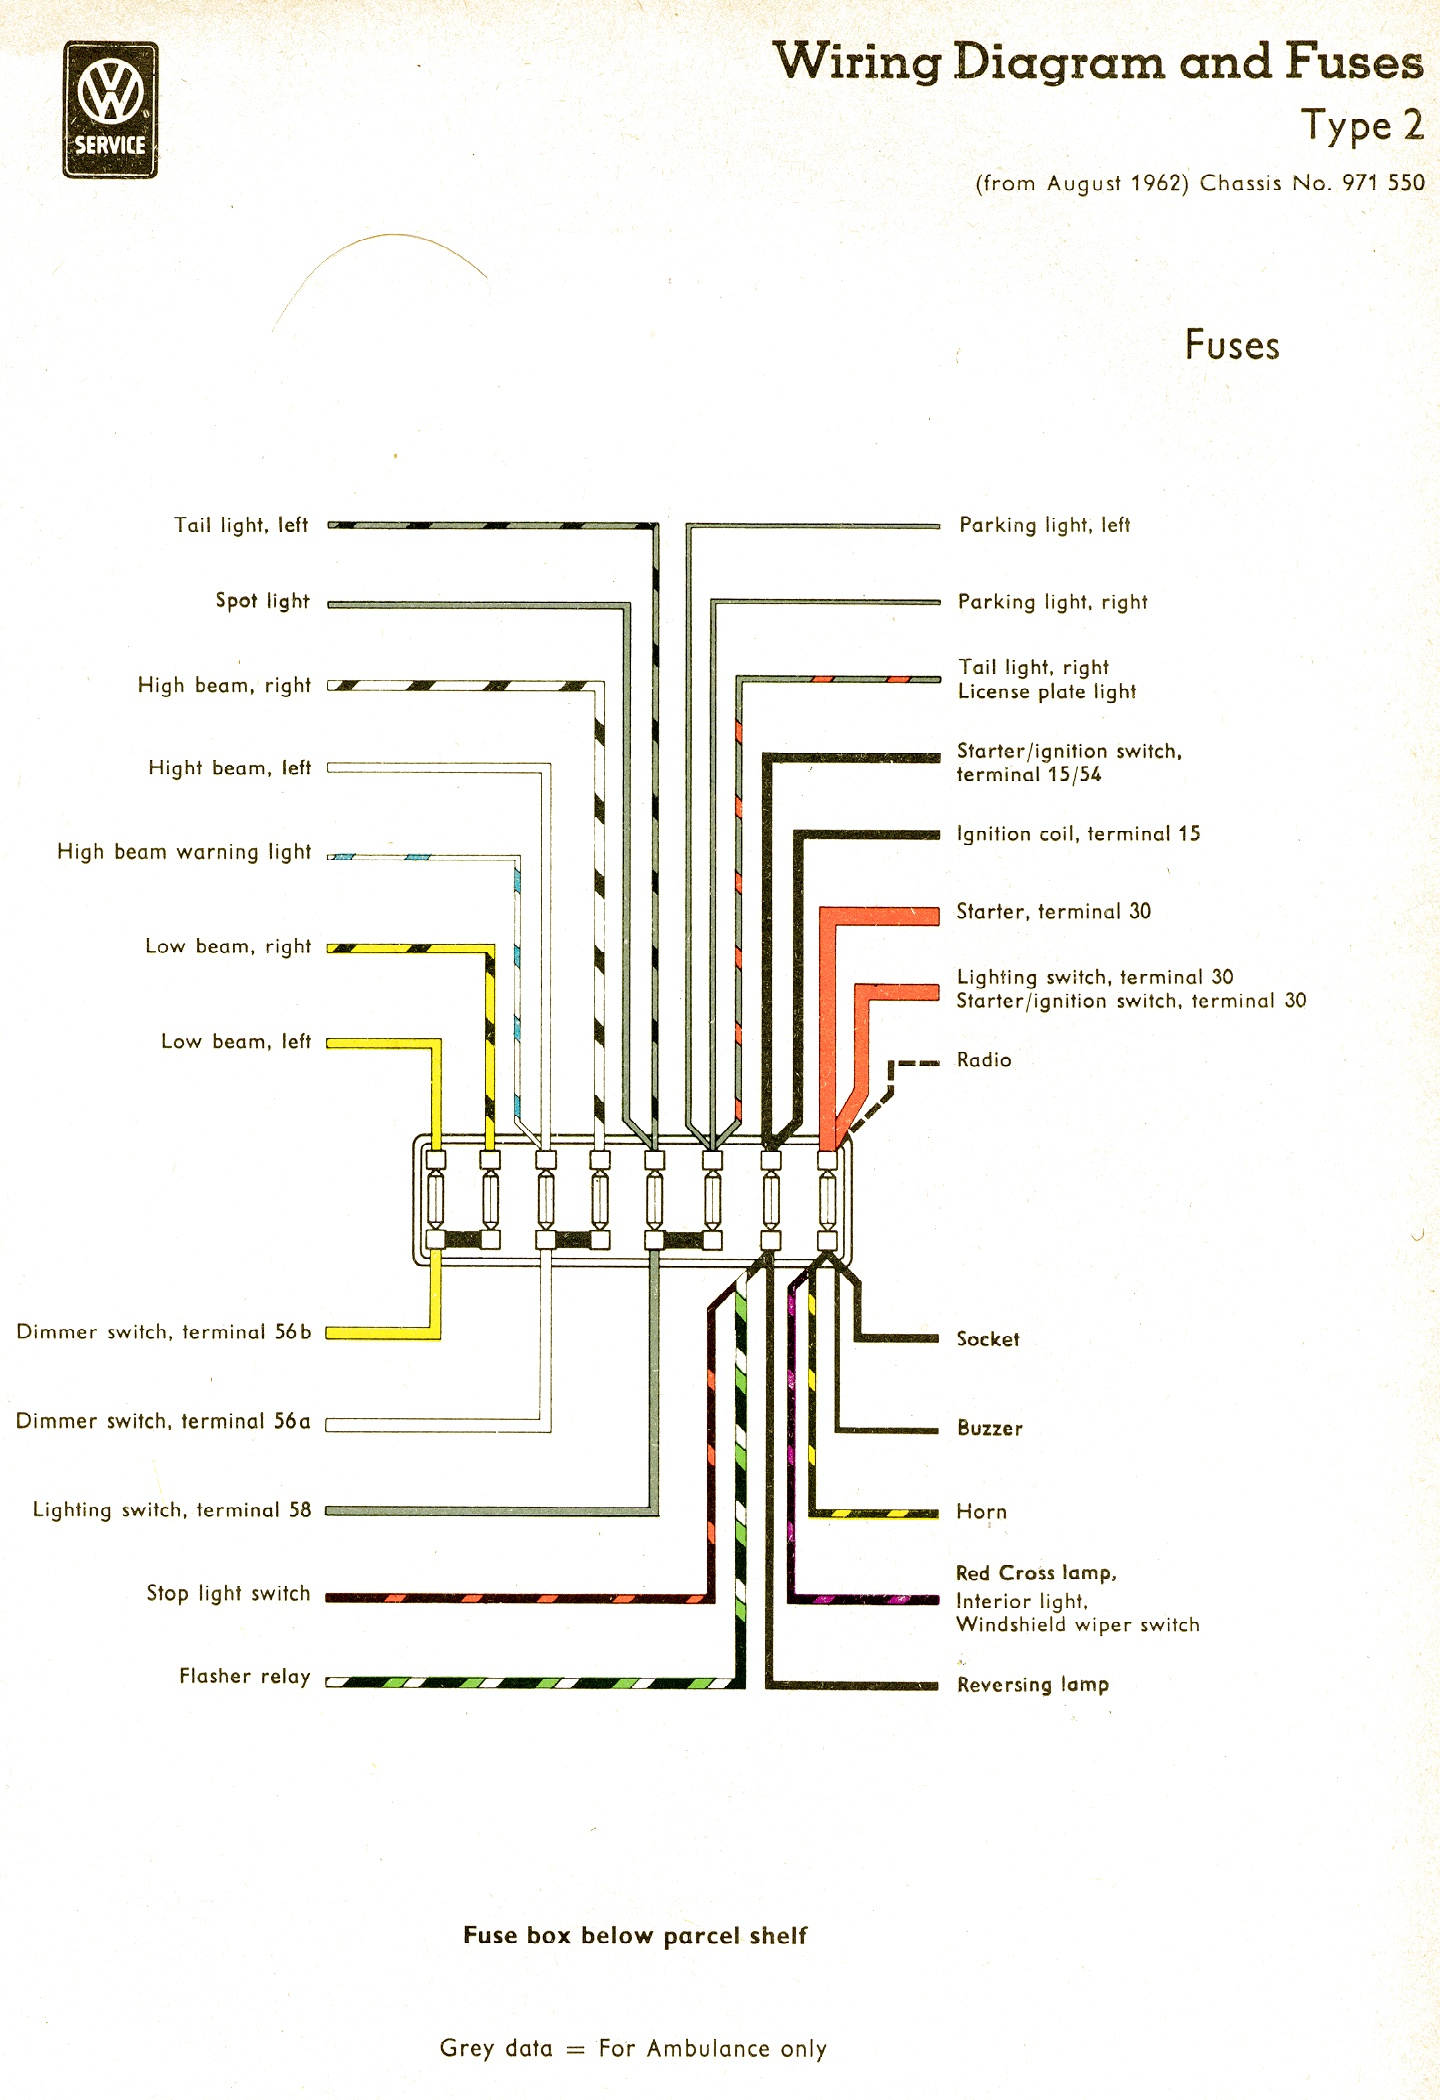 bus 62 fuse vw wiring diagrams 1970 vw beetle wiring diagram at edmiracle.co